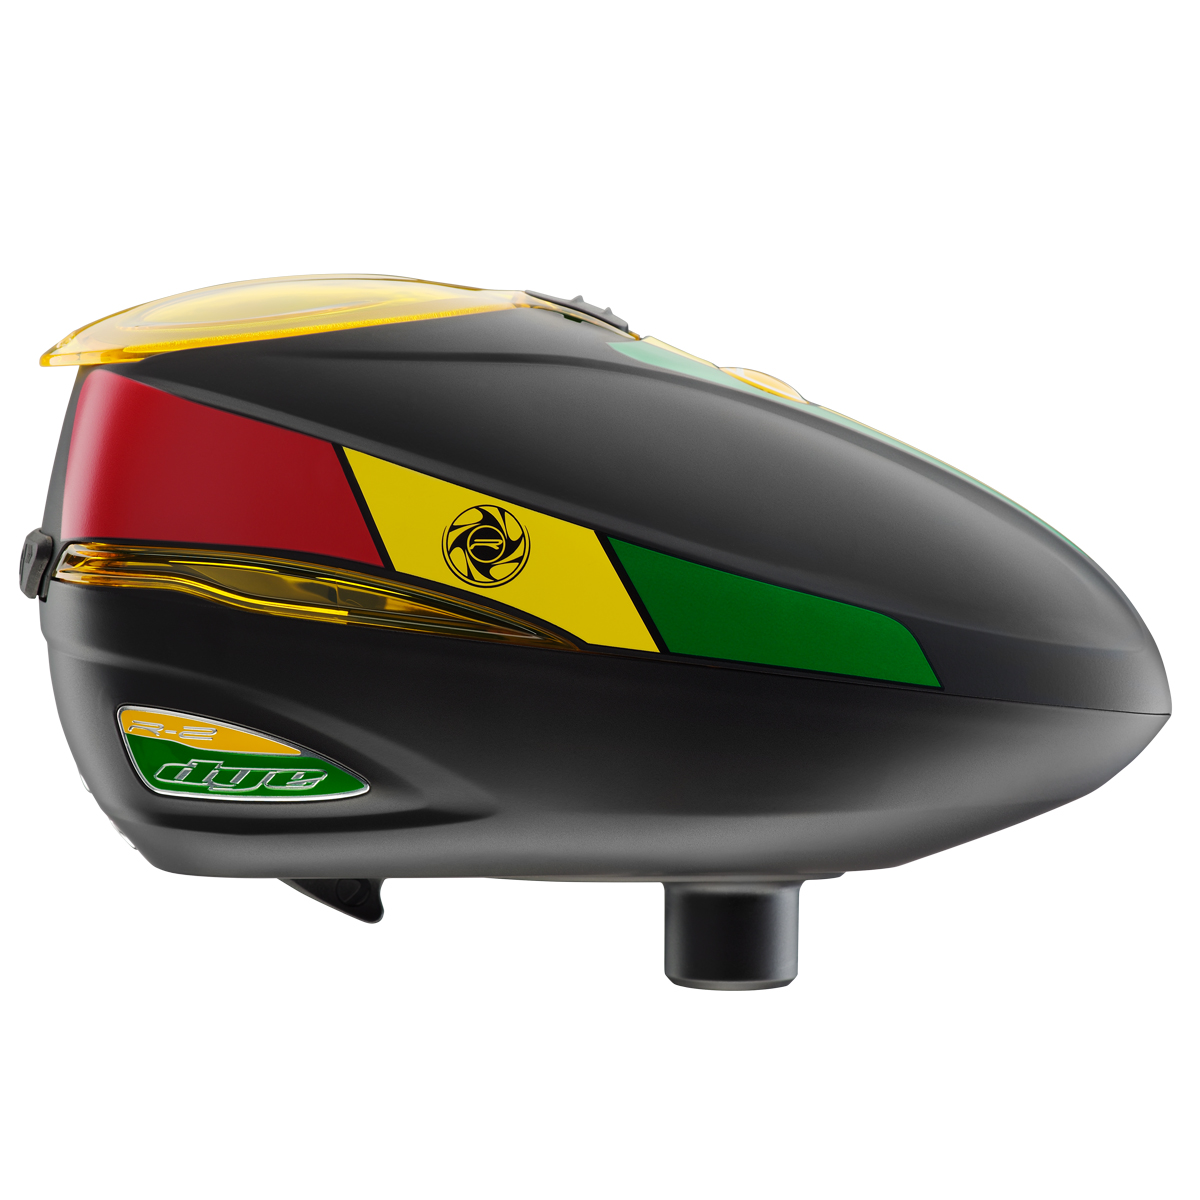 Dye Rotor R2 Paintball Loader Rasta by Dye Precision